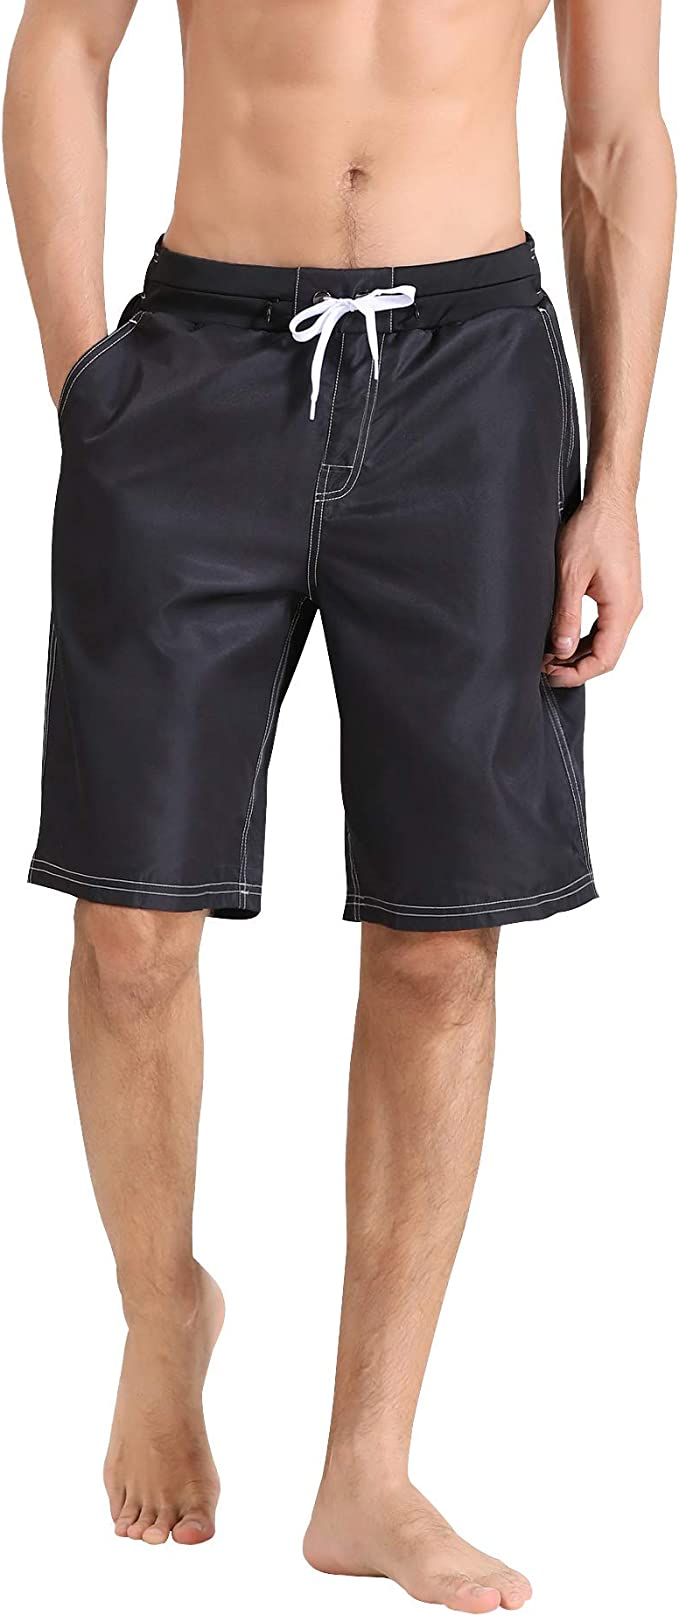 Wave Travel Mens Beach Board Shorts Quick Dry Summer Casual Swimming Soft Fabric with Pocket